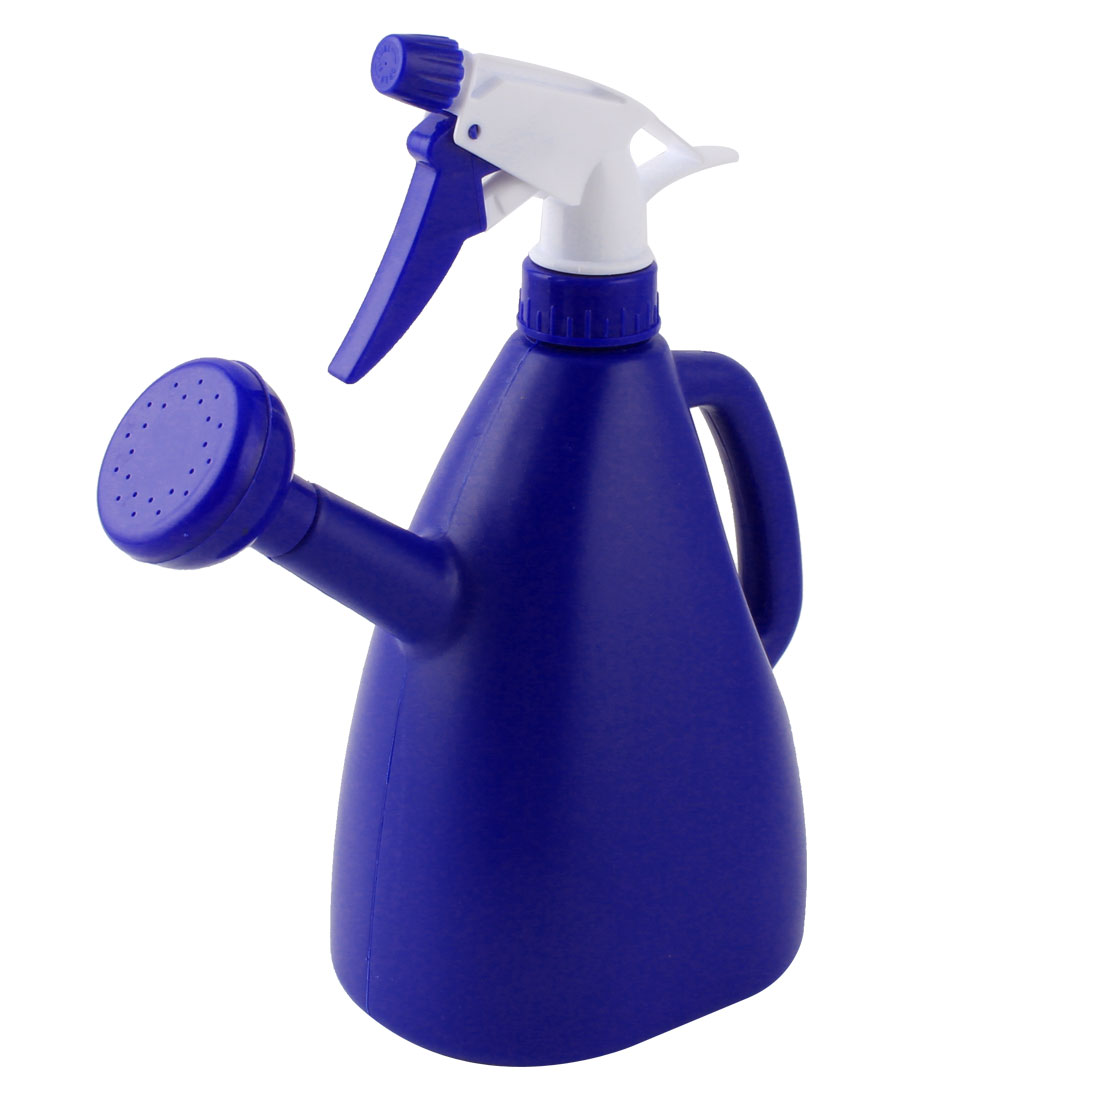 Garden Flower Plant Plastic Dual Purpose Double-end Trigger Spray Water Bottle Blue 890ml